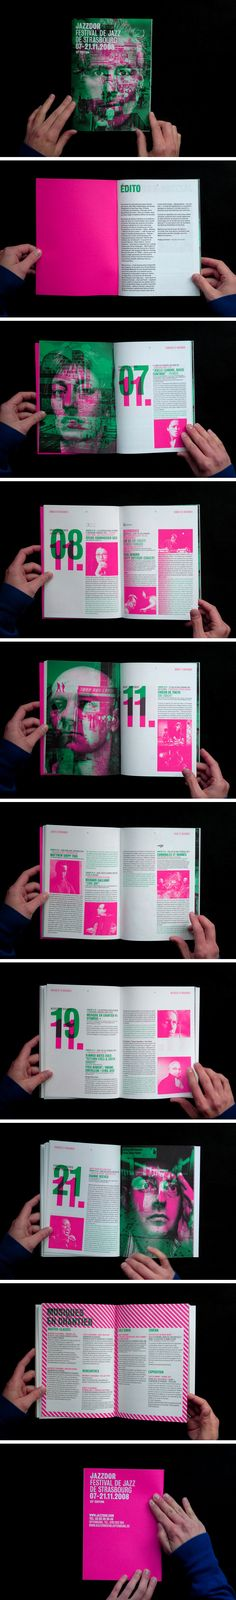 """Jazzdor, it's the Strasbourg Jazz festival. The French agency """"Helmo"""" has designed a #brochure, #posters and program in 3 colors. An identity really nice and interesting 